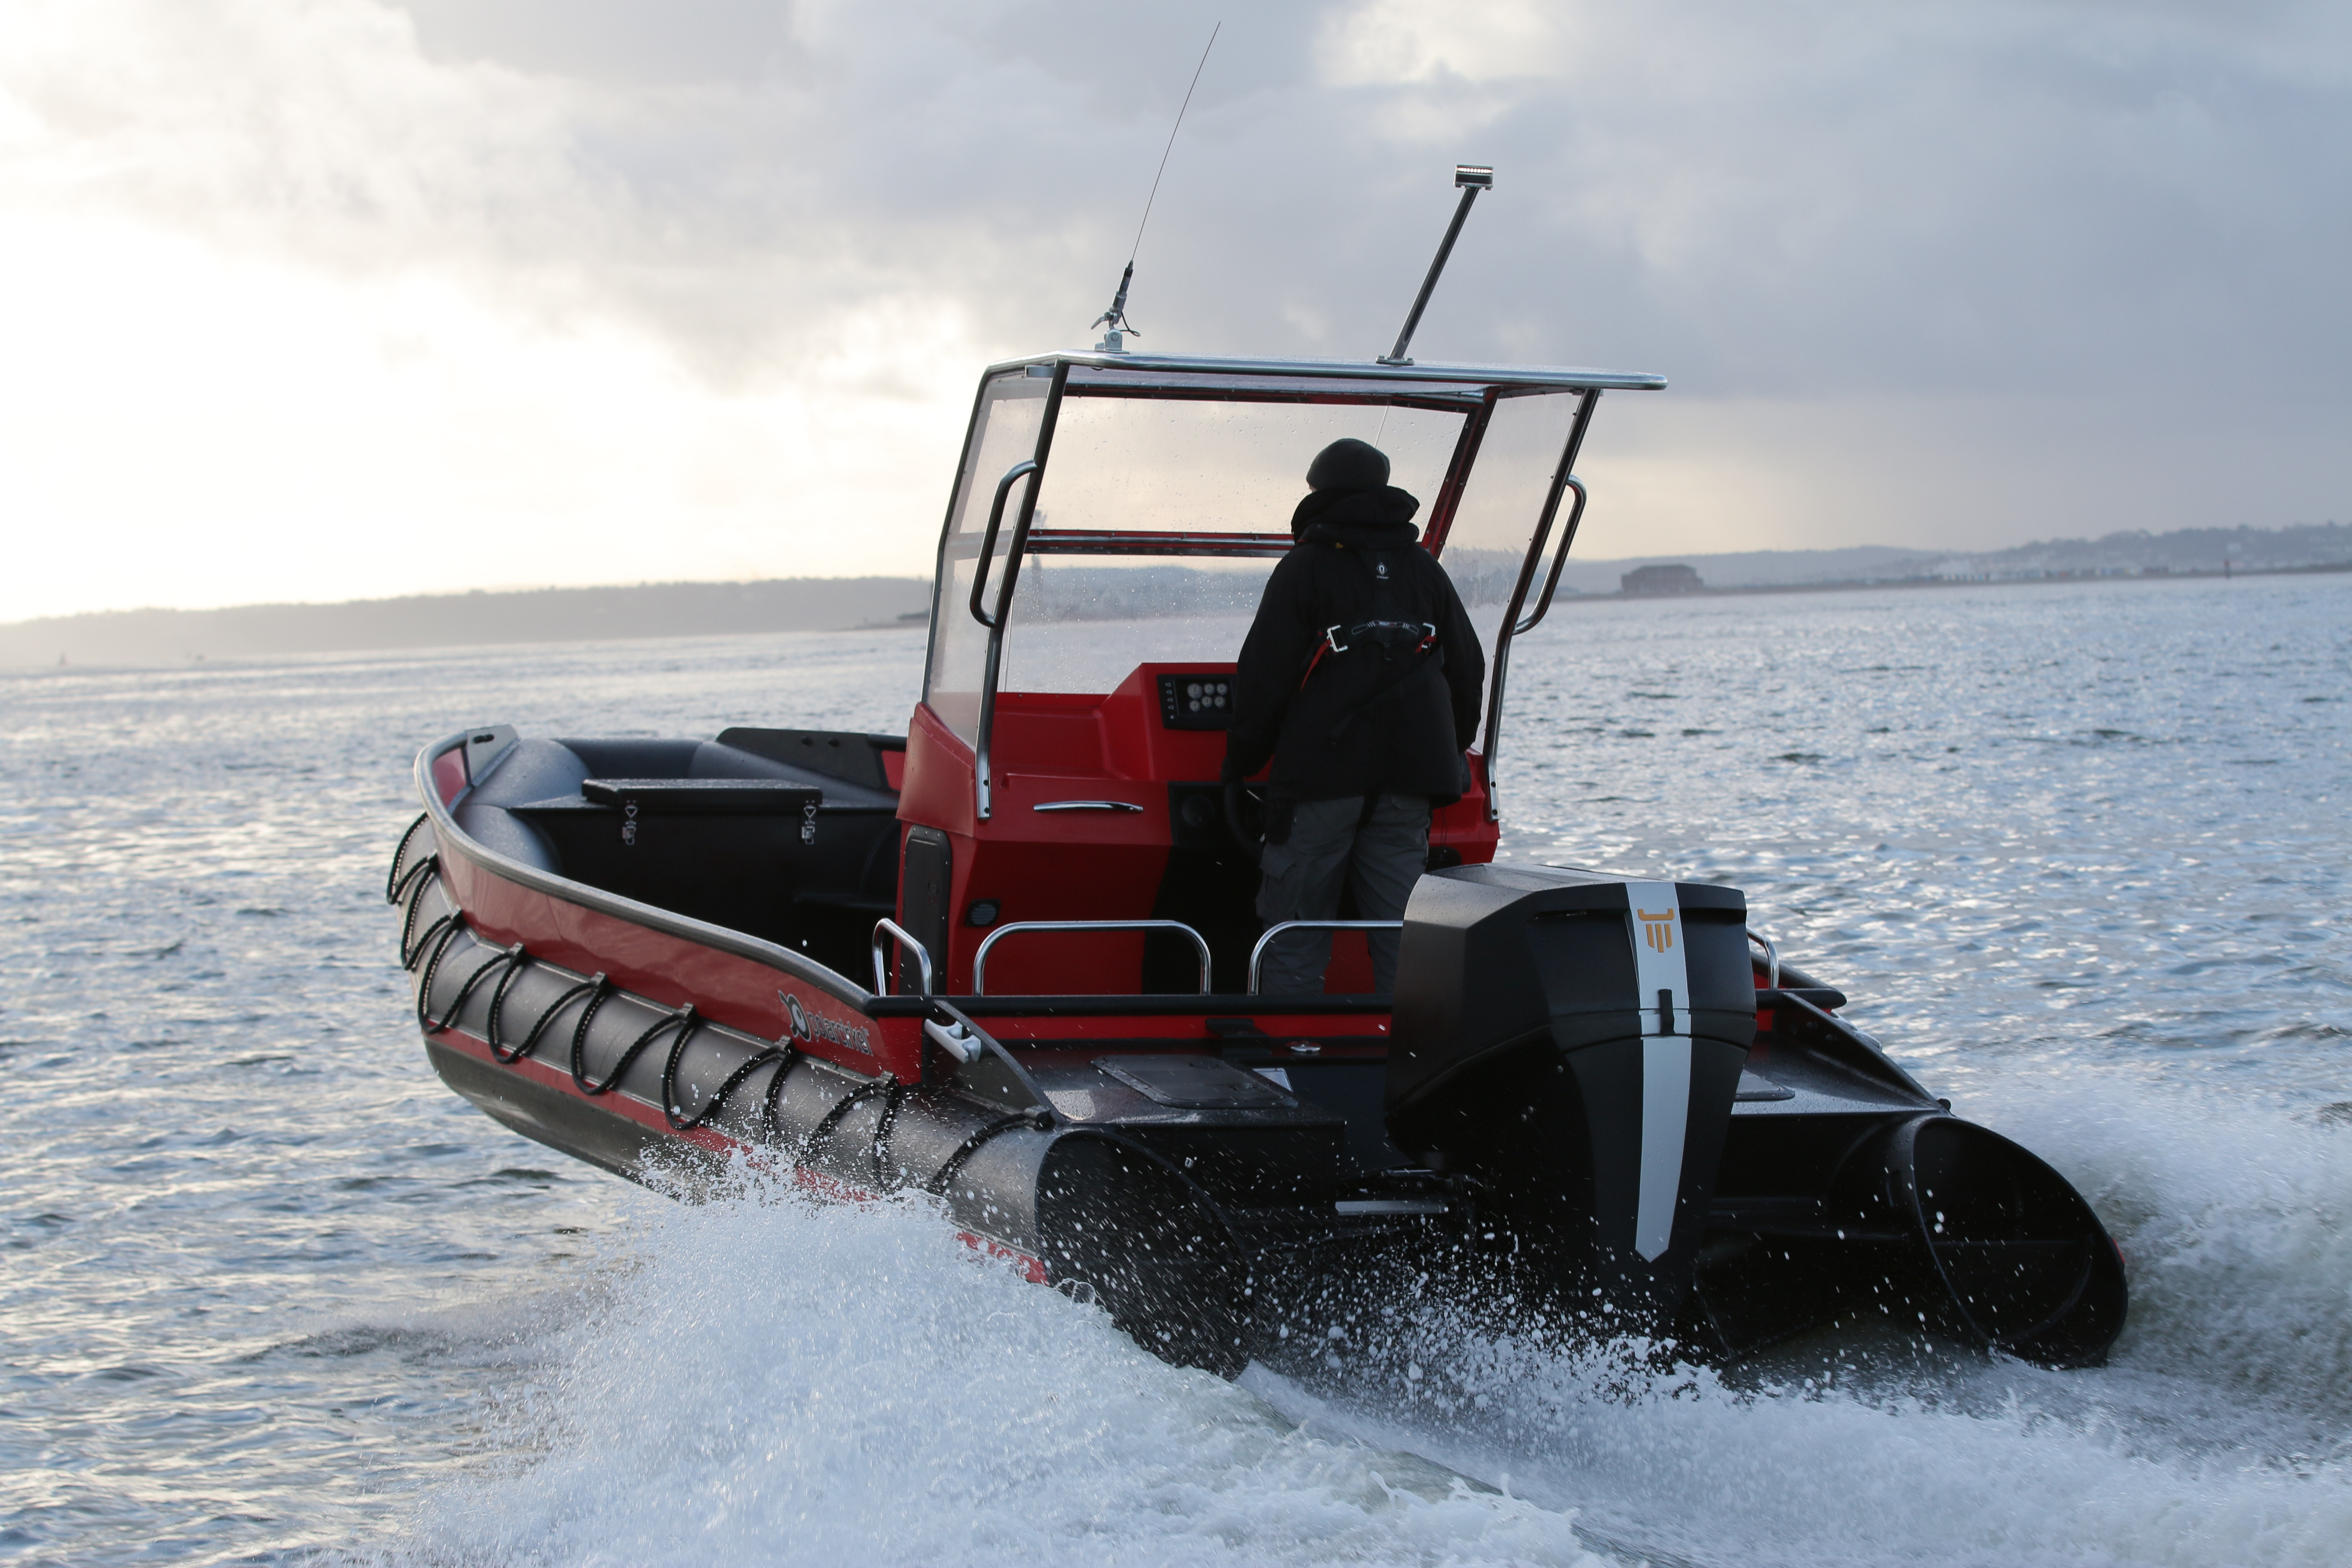 Diesel Outboard Motor : First oxe diesel outboard enters service with marine